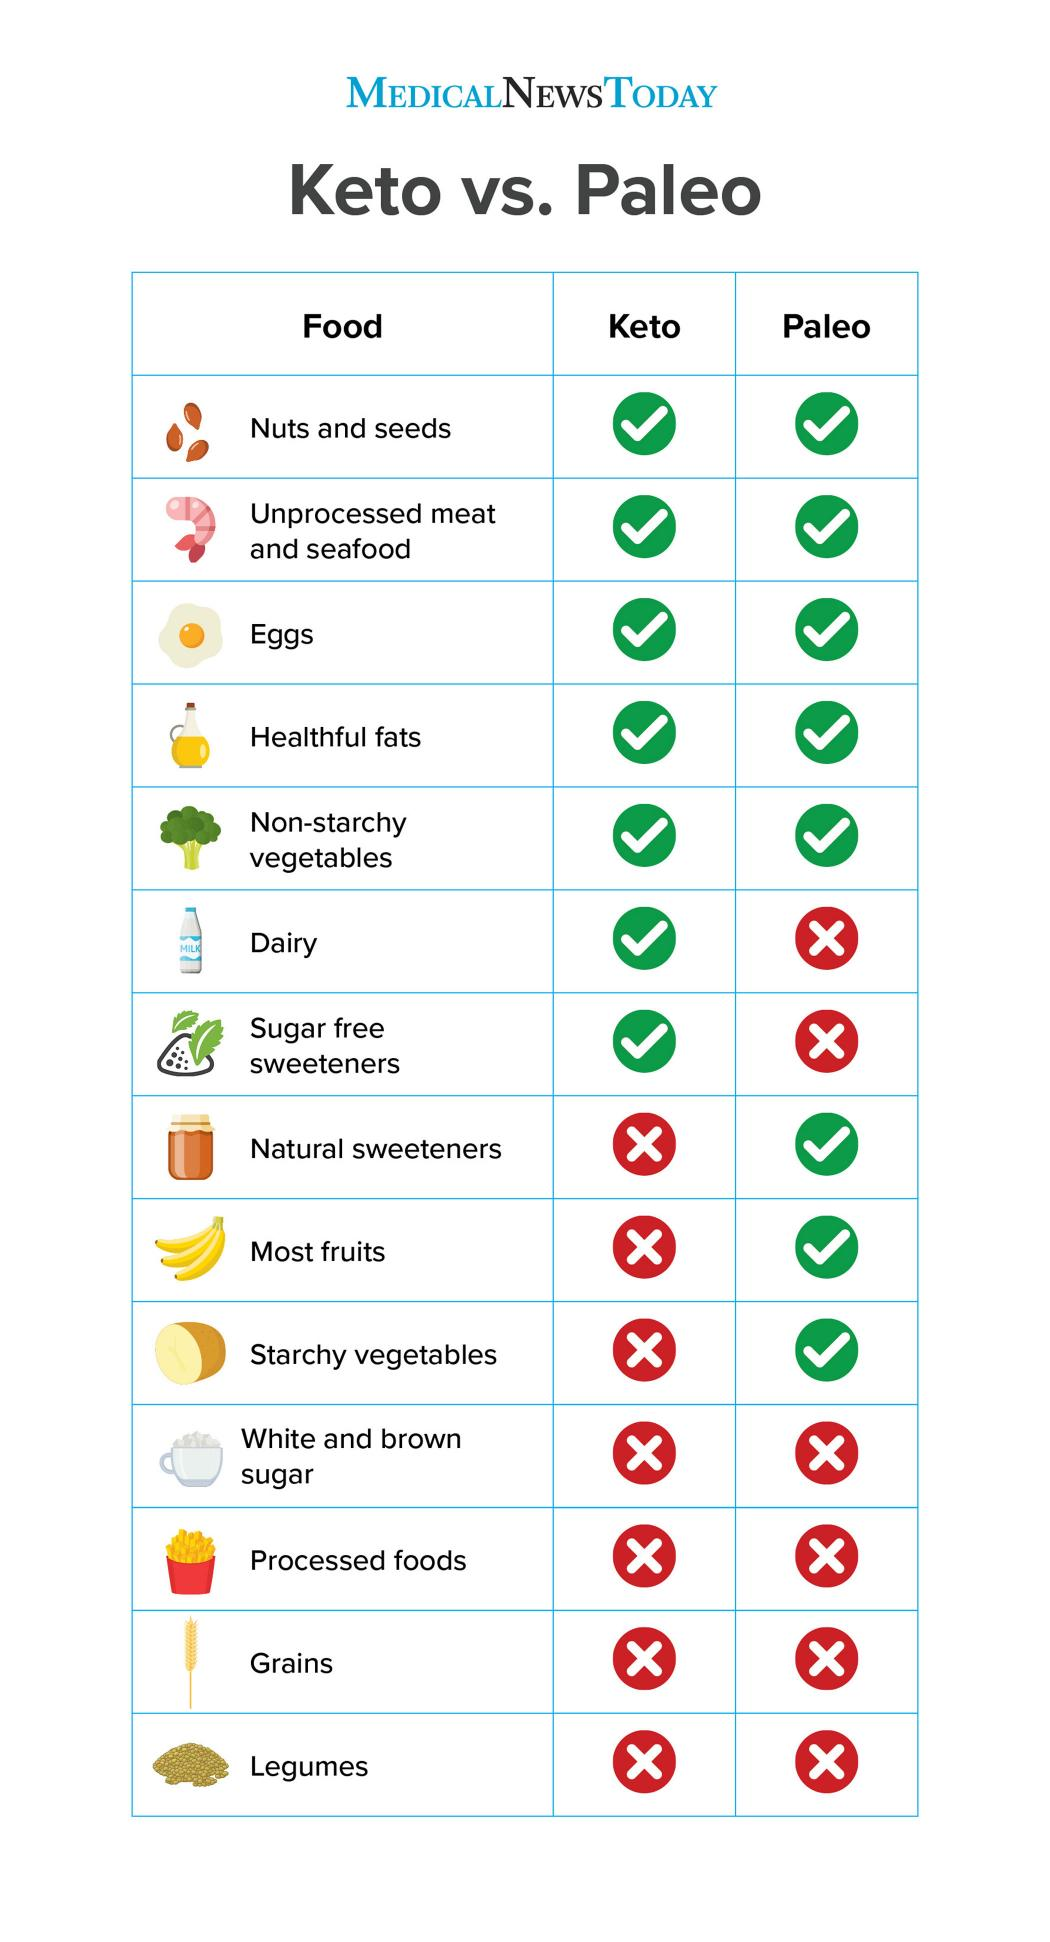 an infographics showing the difference and similarities between a keto and paleo diet